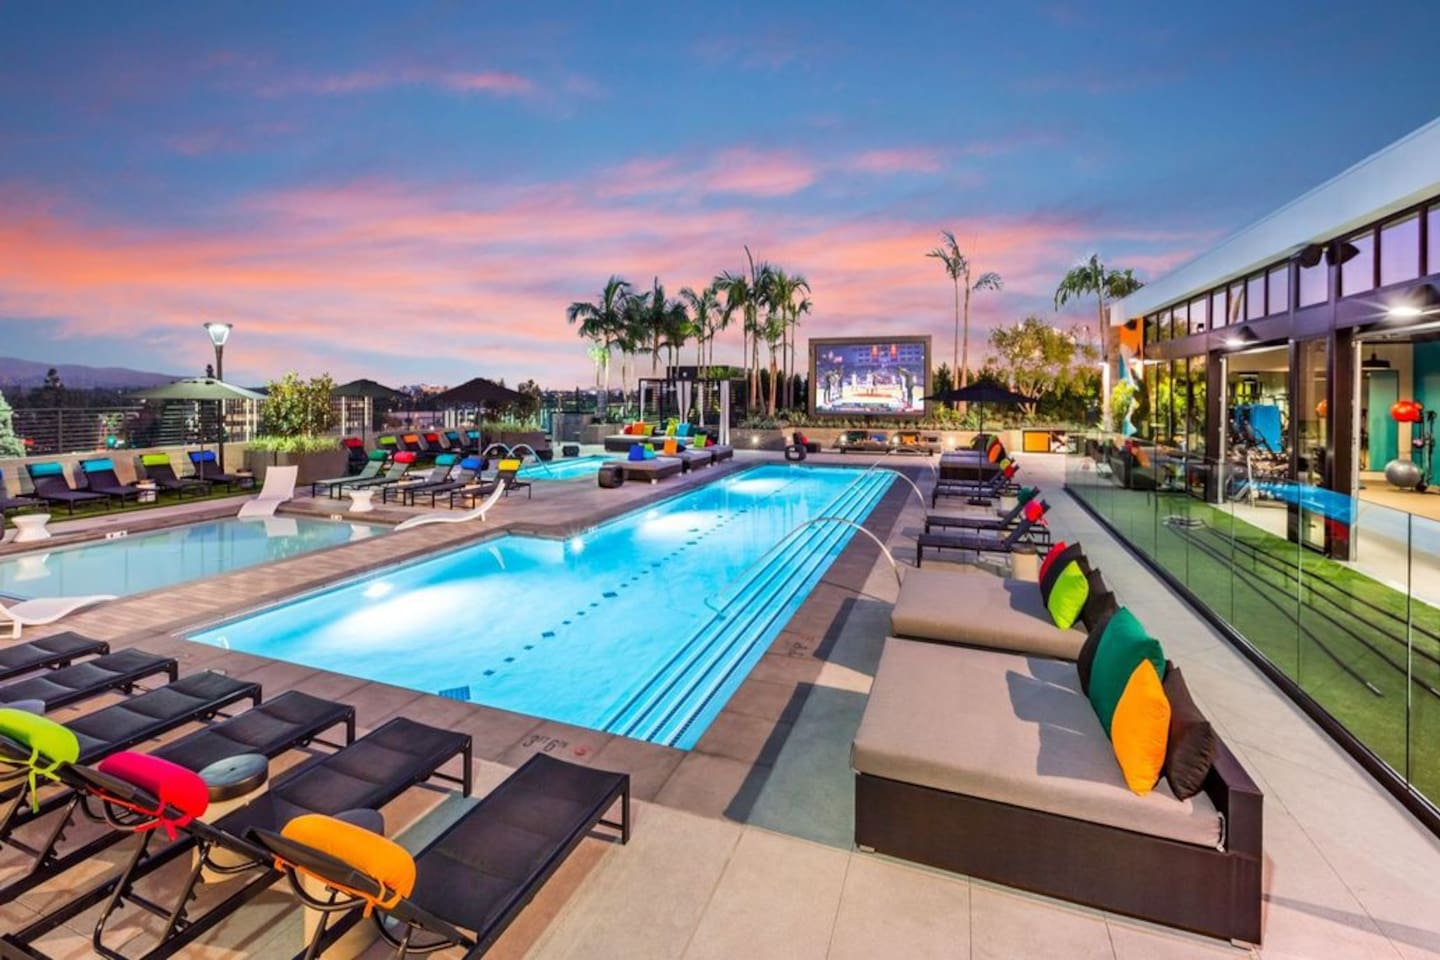 Lay by our massive pool on a rooftop with a giant TV screen and that sweet SoCal sunshine